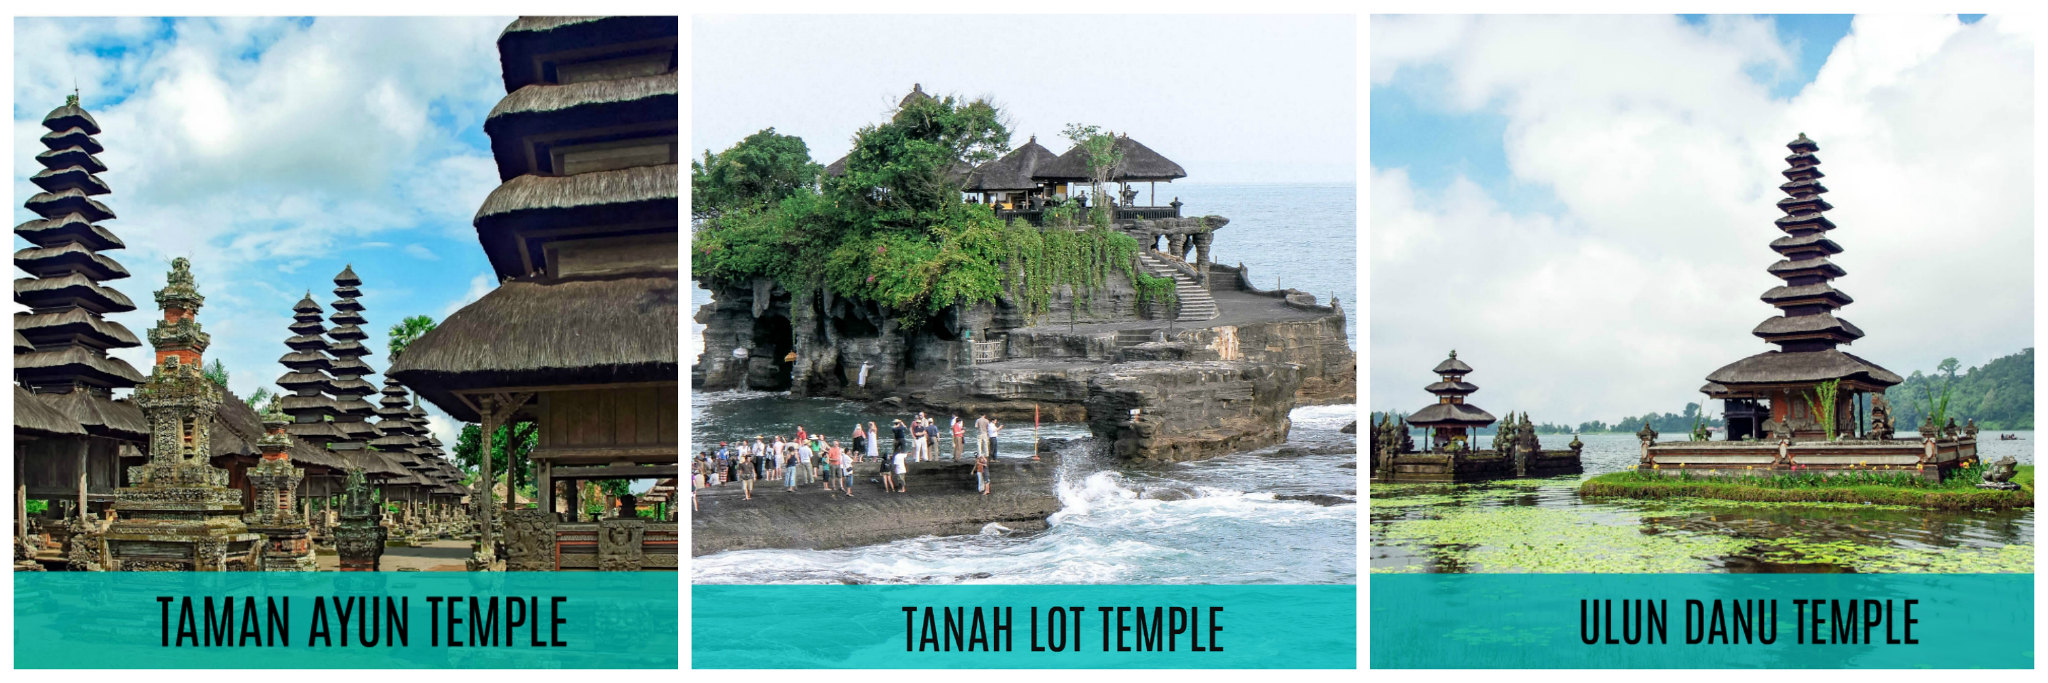 BALI TRAVEL GUIDE (ITINERARY + BUDGET) Blog 2019 - The ...